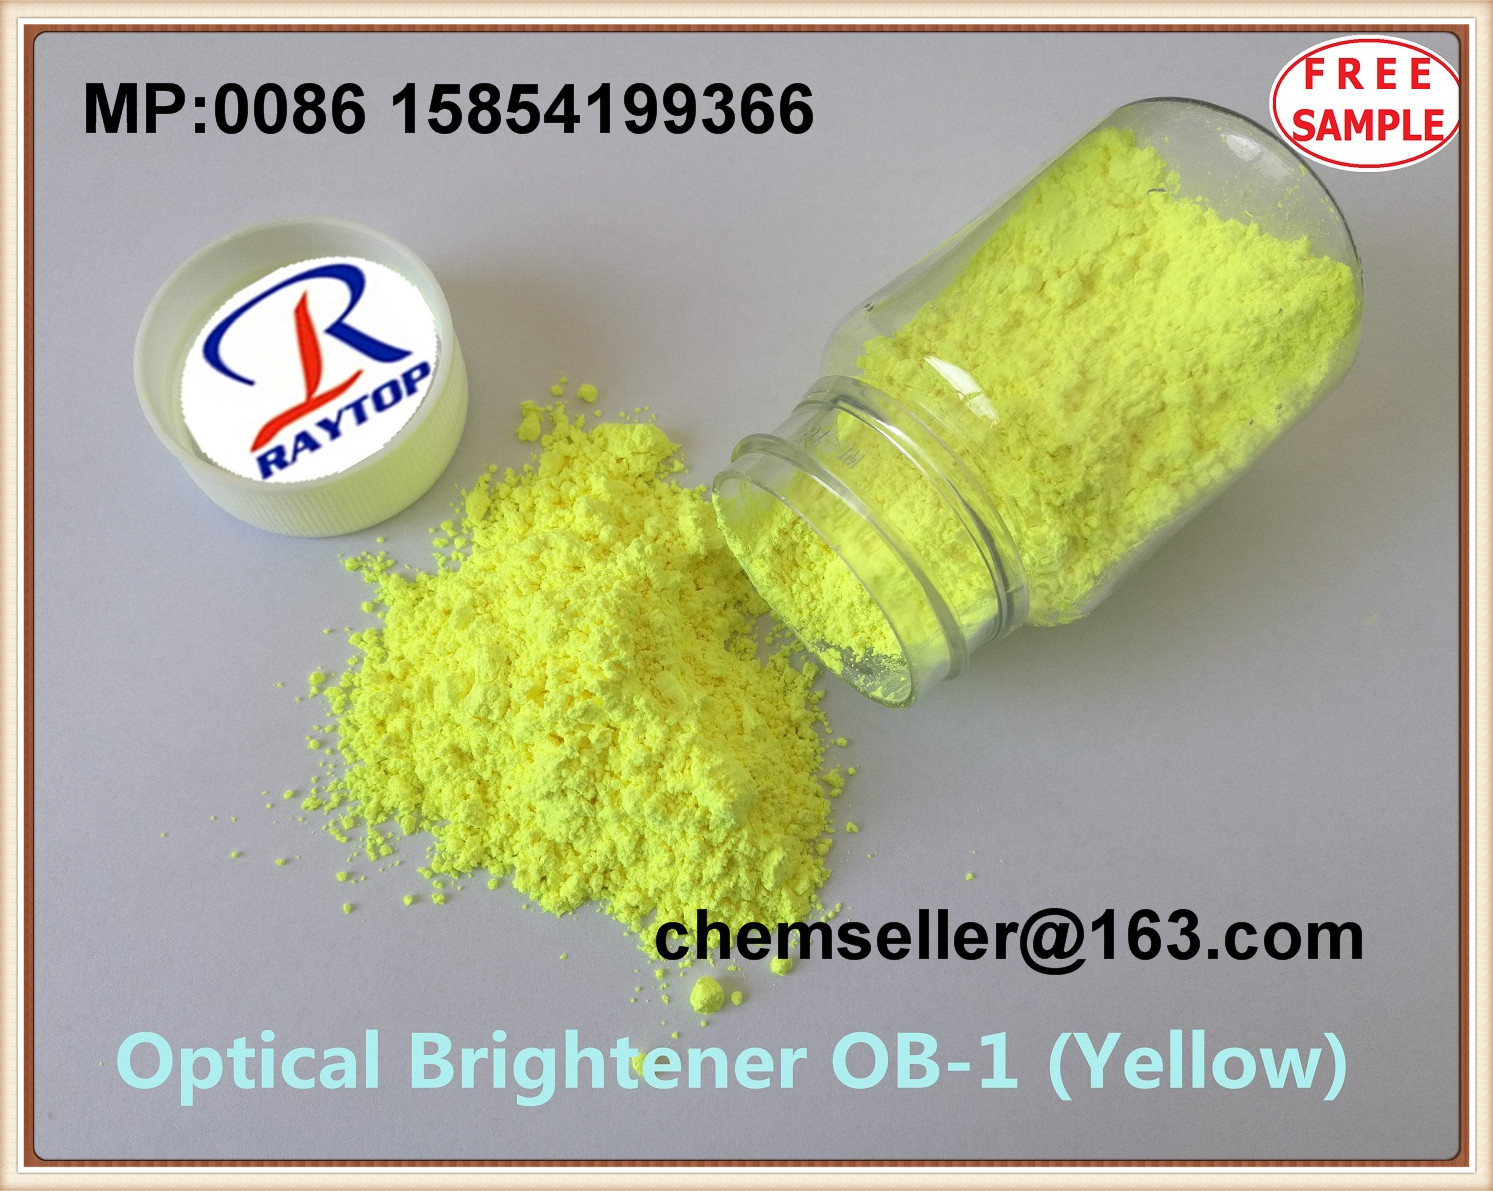 Pure Optical Brightener OB-1 393 for master batch